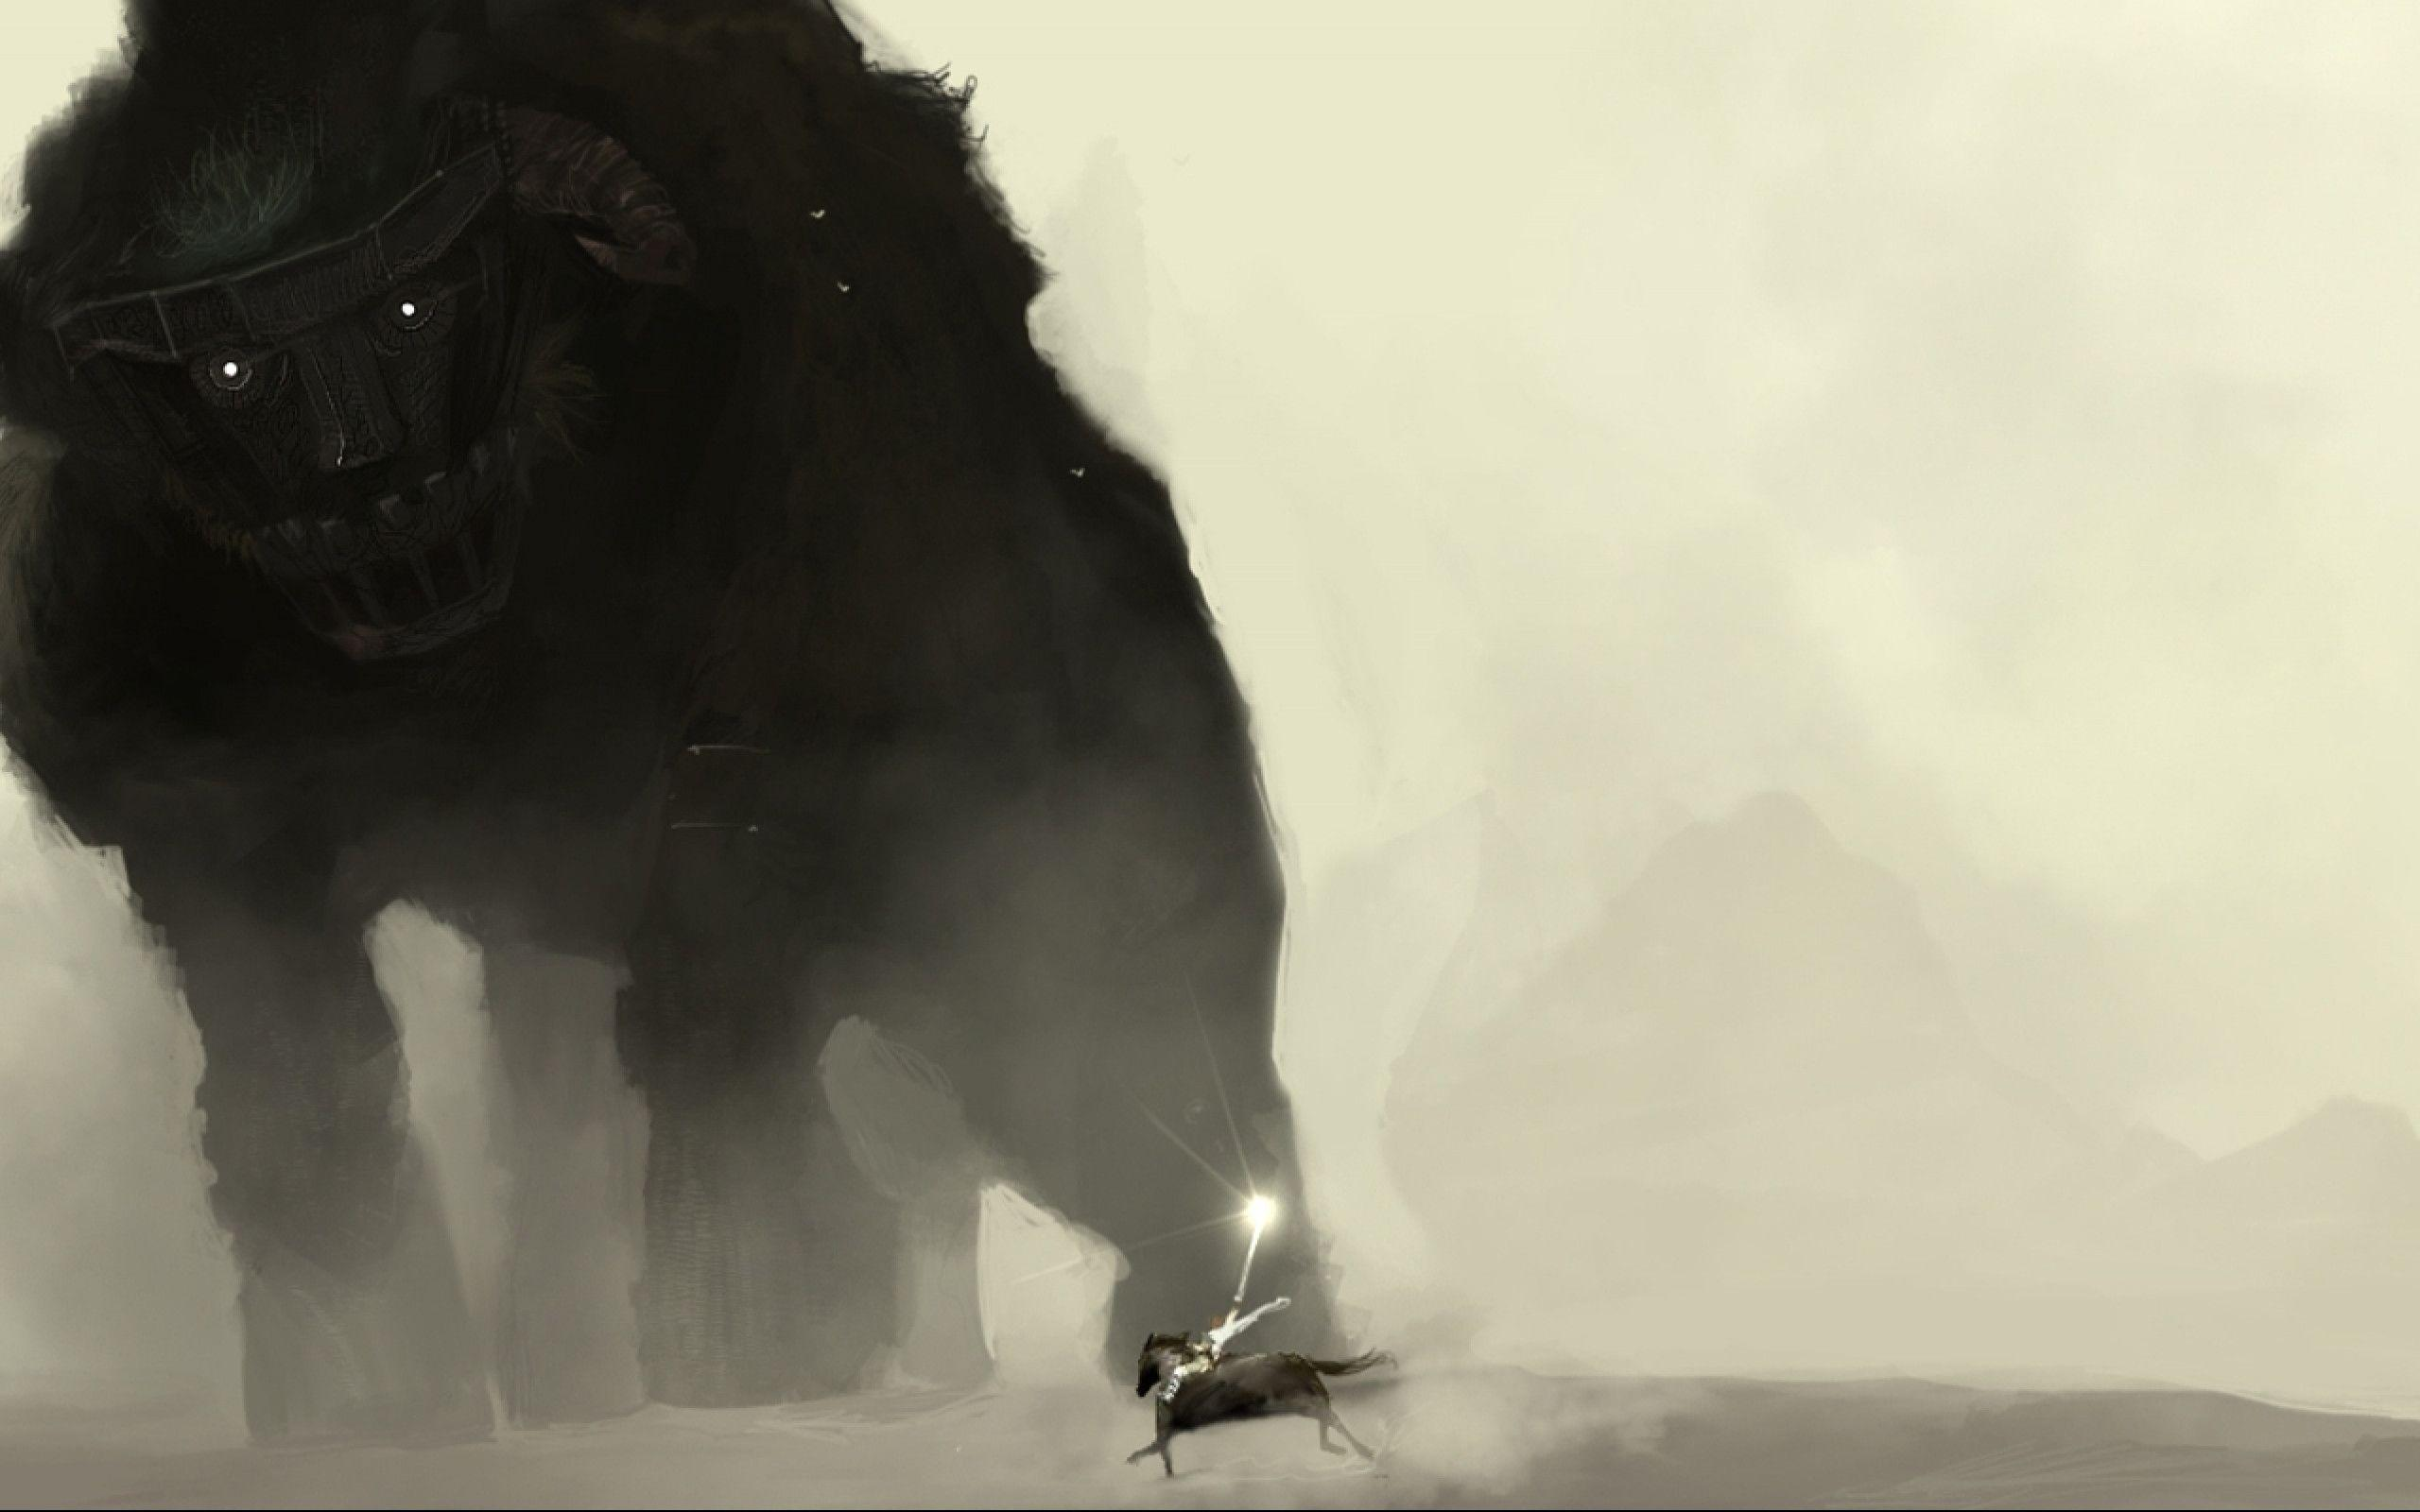 17 Best images about Ico & Shadow of the Colossus on Pinterest